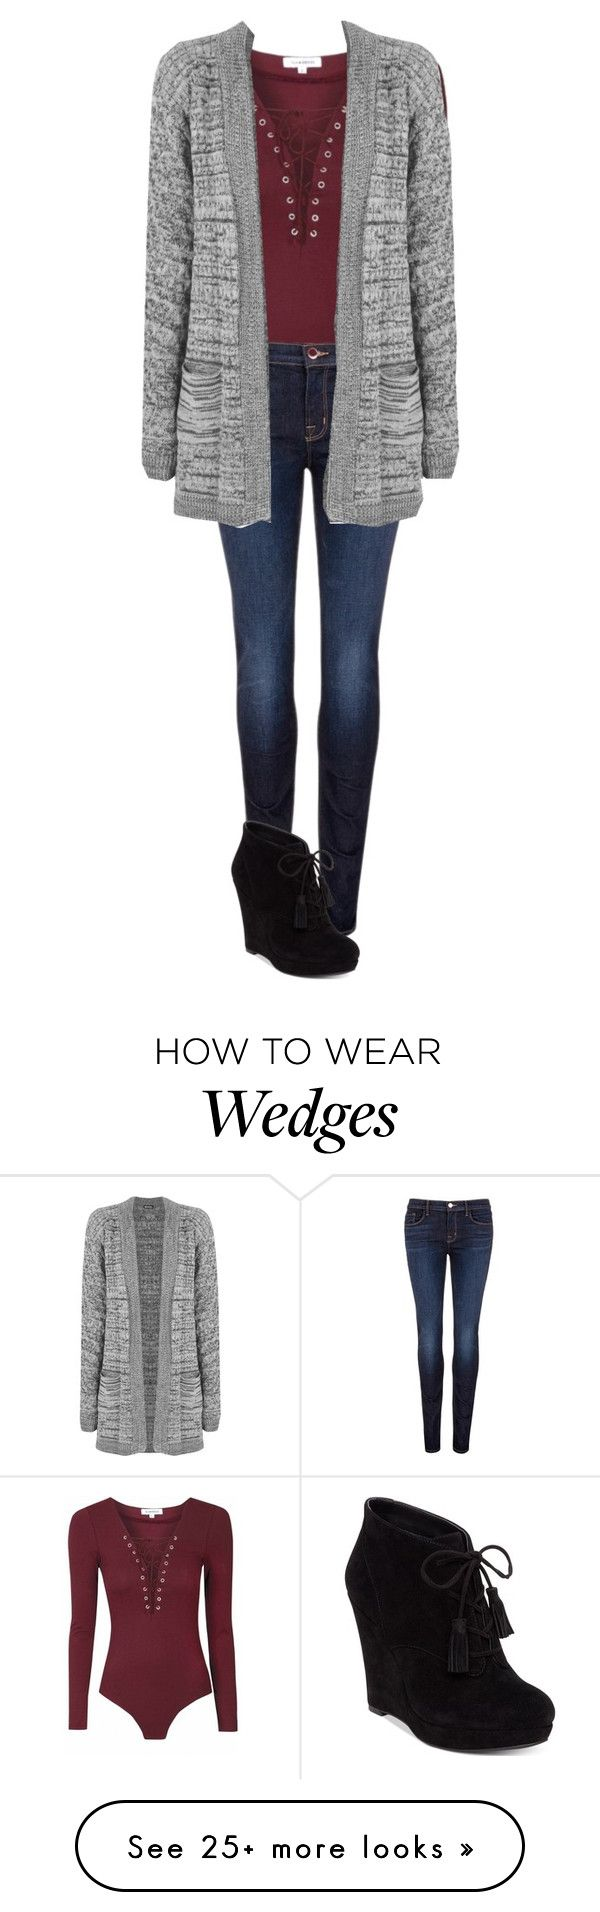 """For my sister"" by broken-scene-queen on Polyvore featuring J Brand, Jessica Simpson and WearAll"